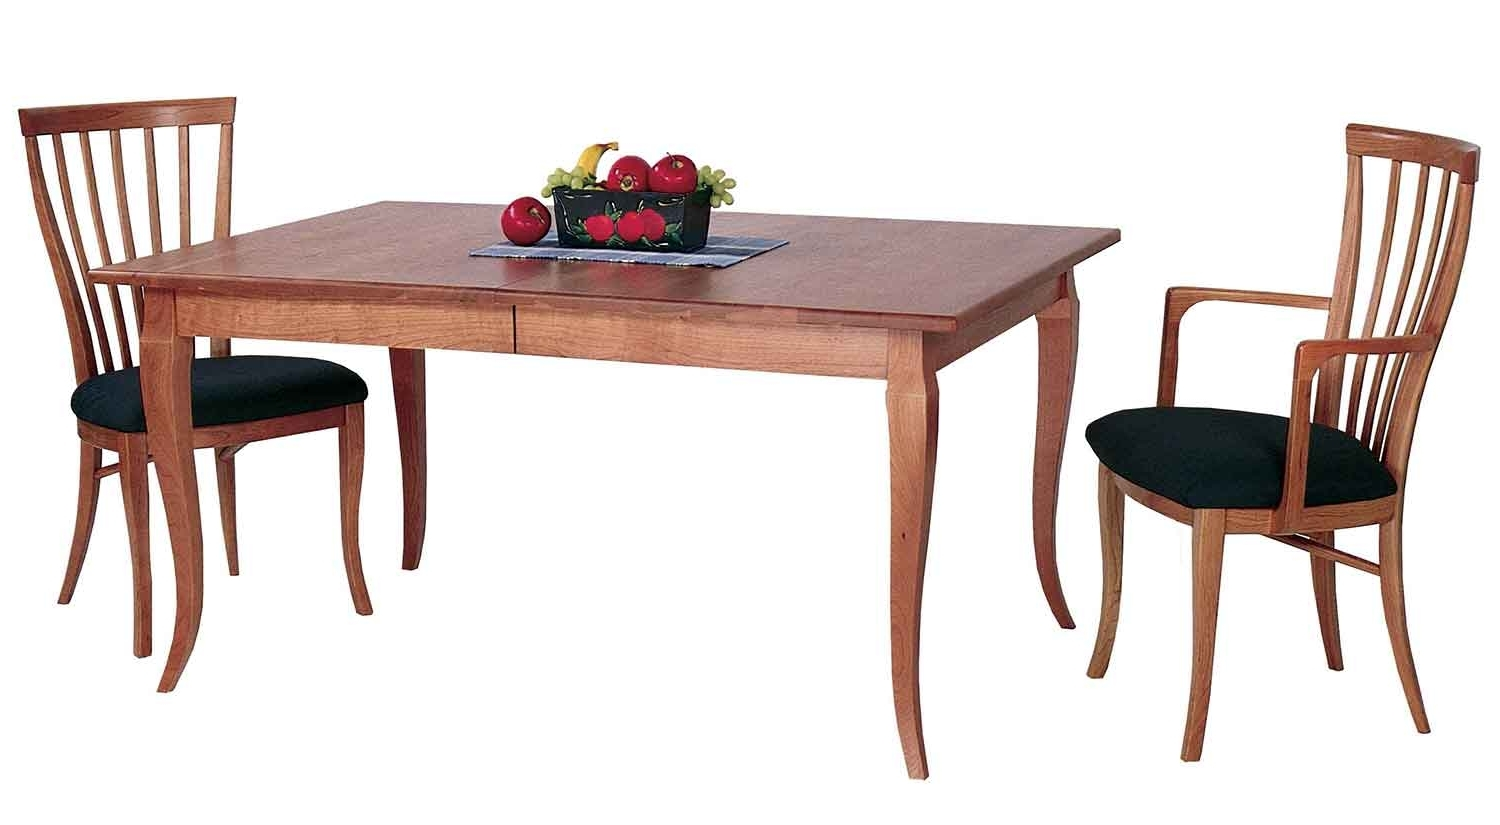 French Country Dining Tables Inside 2018 Circle Furniture – French Country Dining Table In Cherry (View 8 of 25)